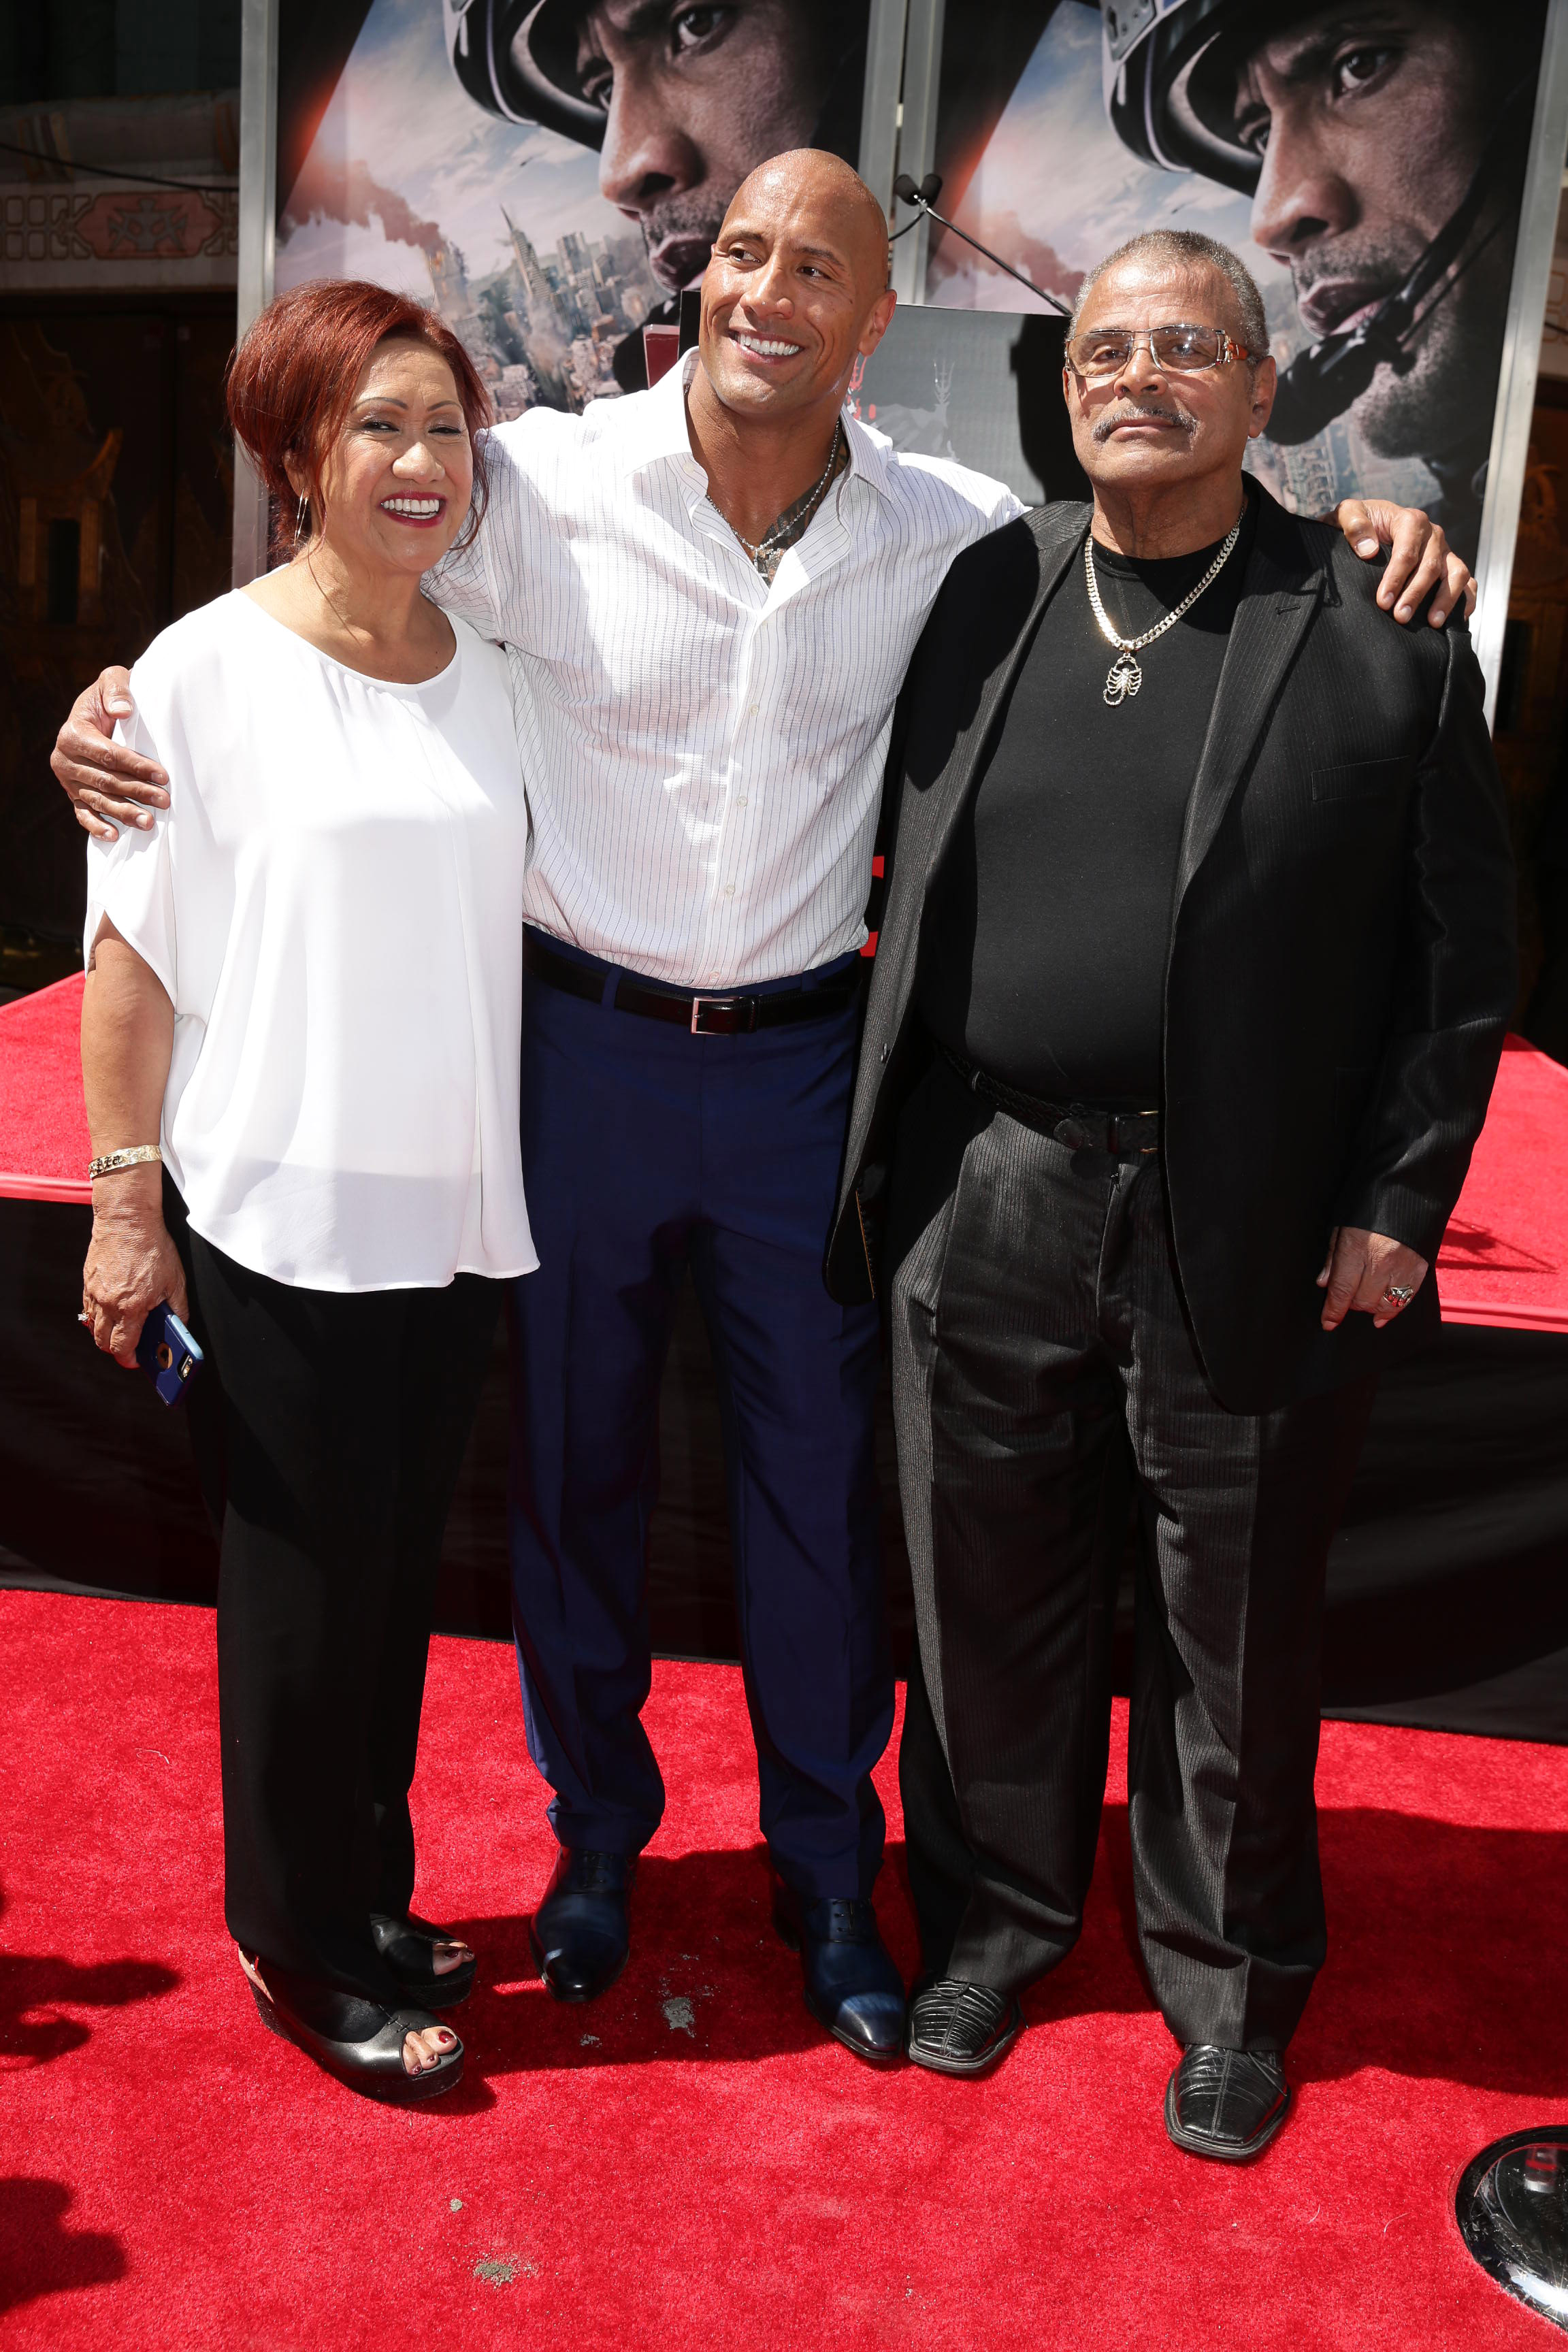 Dwayne Johnson opens up about his dad's 'quick' death and thanks supporters